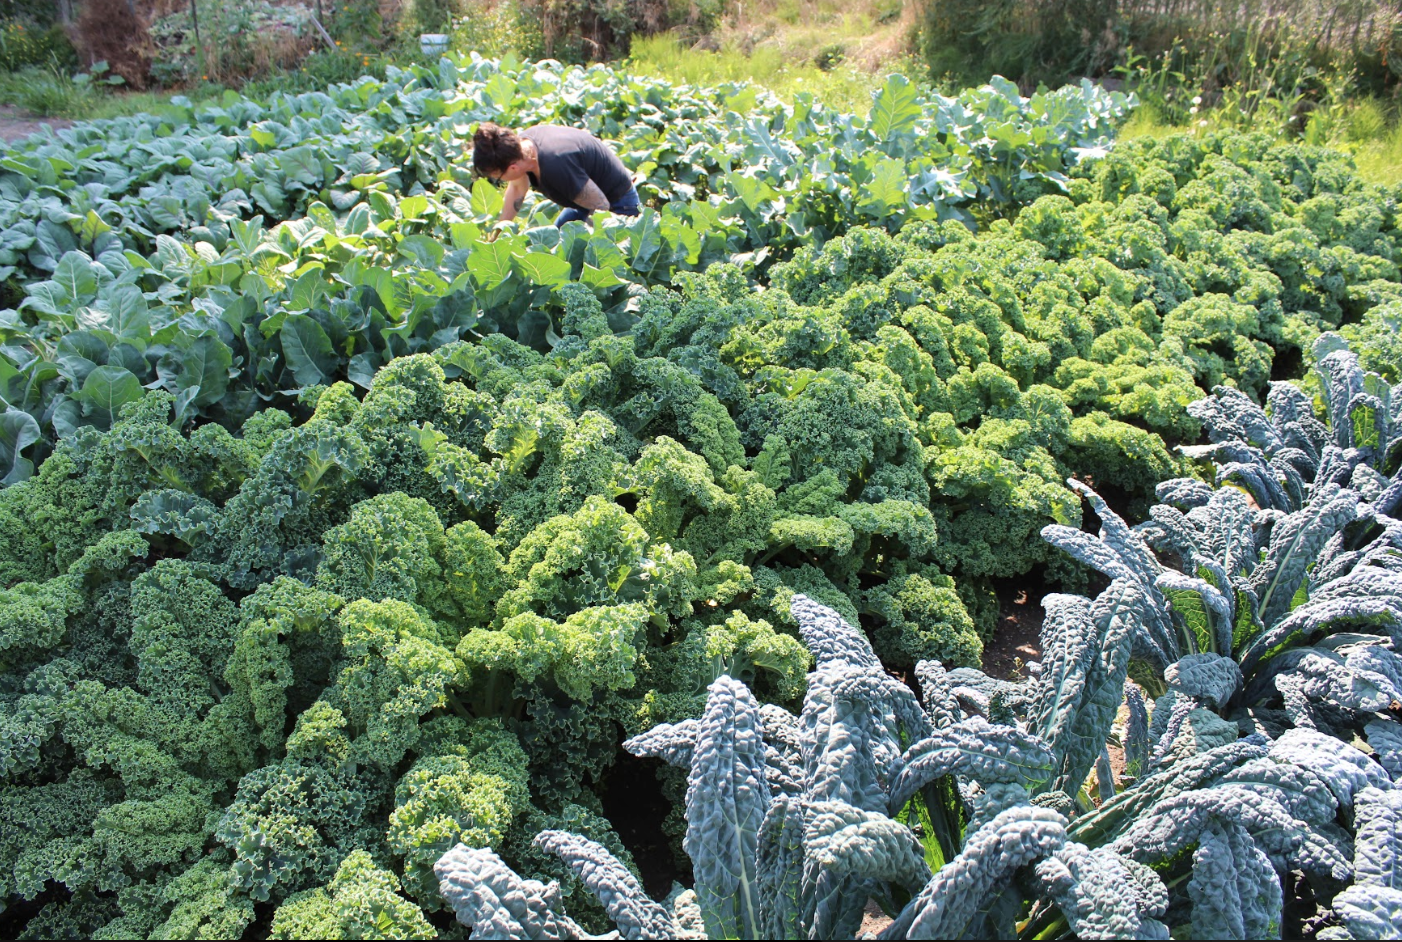 Organic Certified Naturally Grown Kale